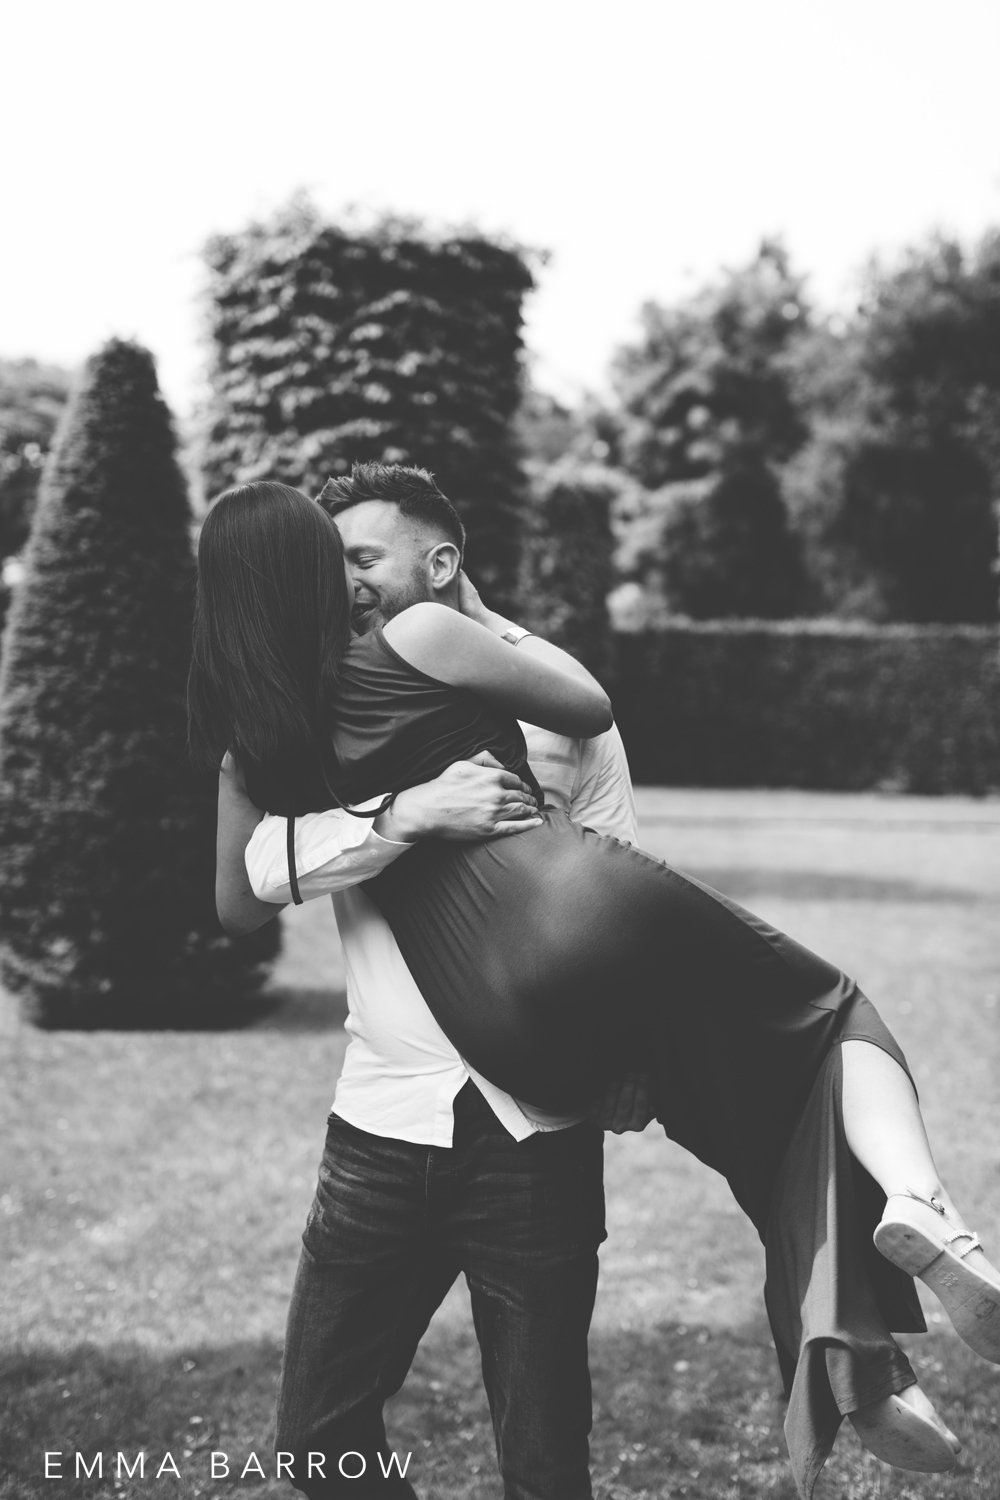 emmabarrow_traceydavidPreWed-32.jpg